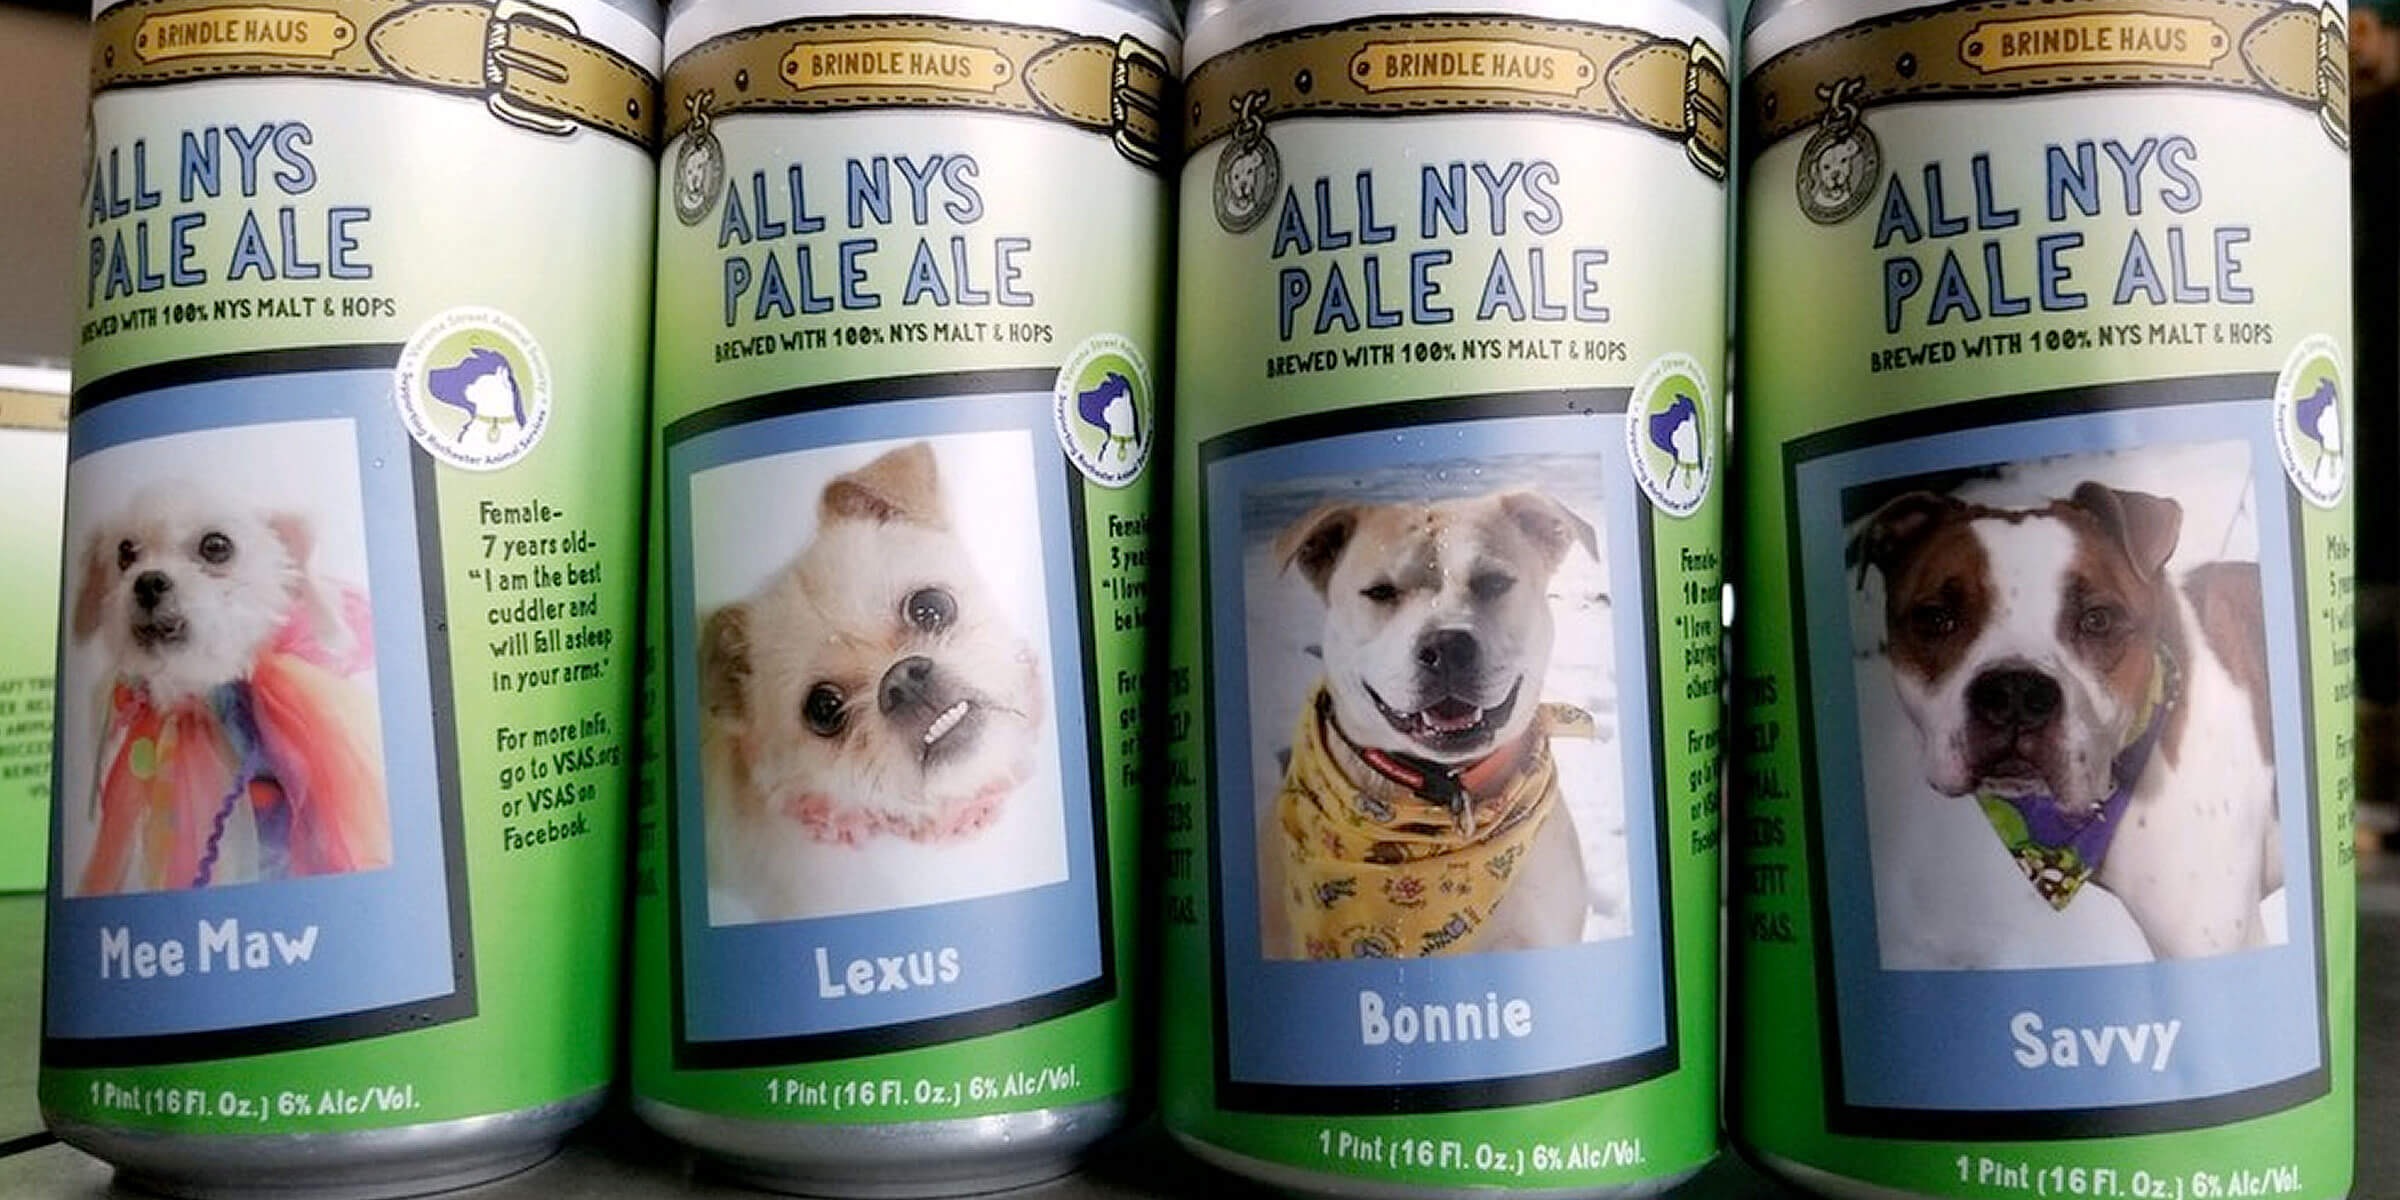 Brindle Haus Brewing Co.'s beer cans are raising awareness for adoptable dogs at Rochester Animal Services and funds for Verona Street Animal Society.